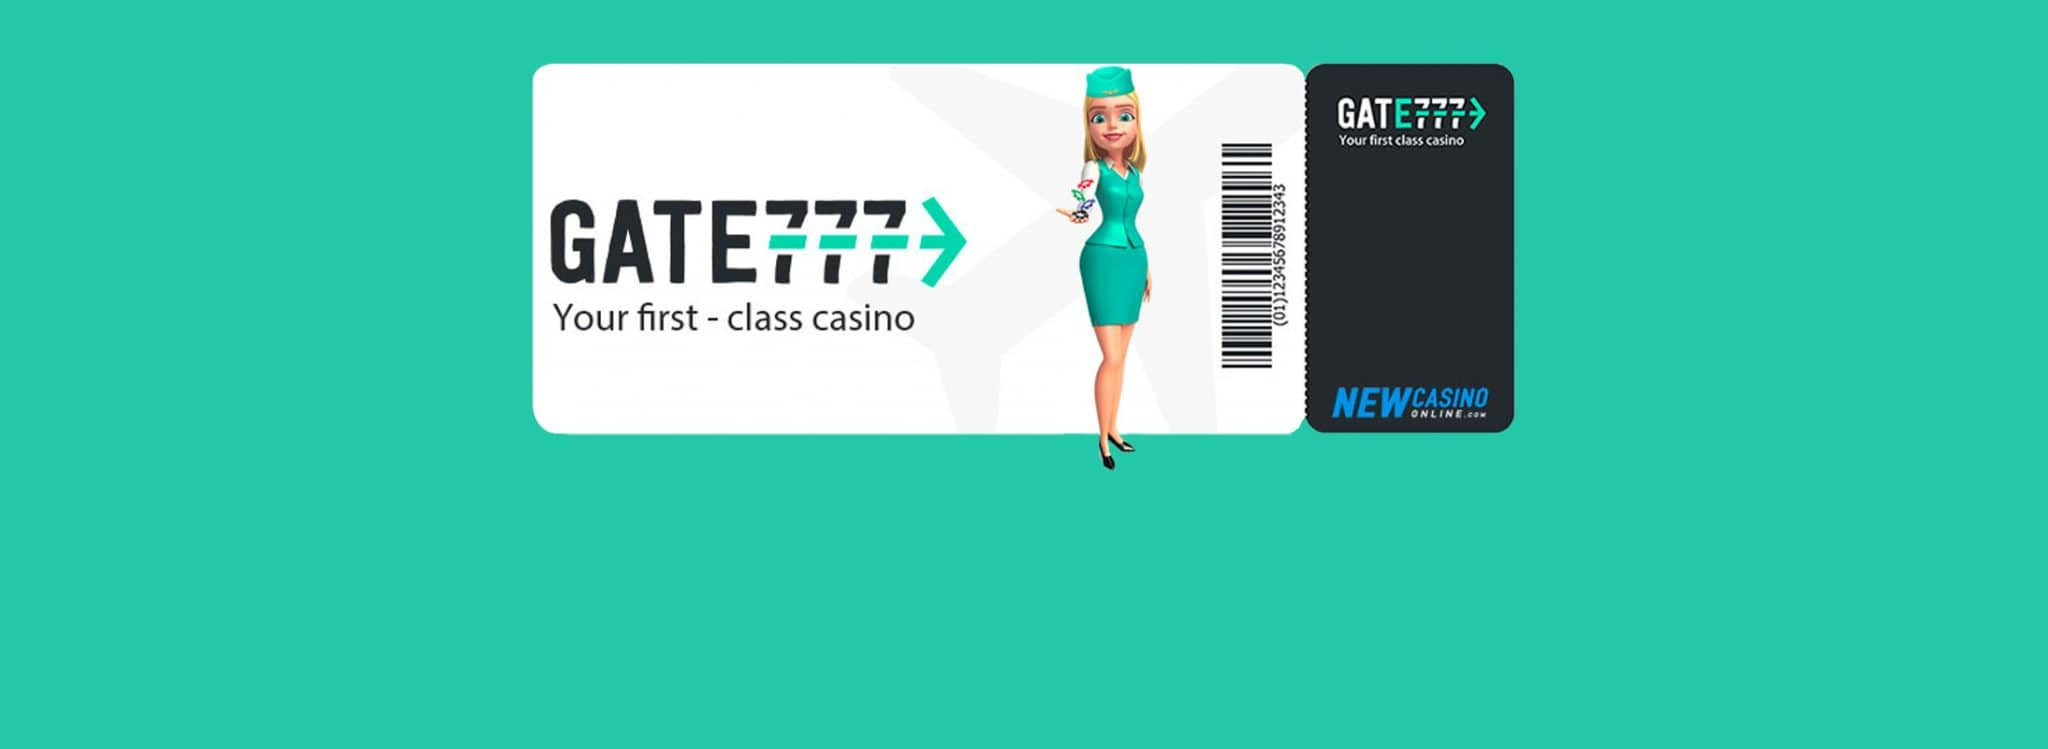 Jet Away To Promotions and Bonuses At Gate777 Casino Today